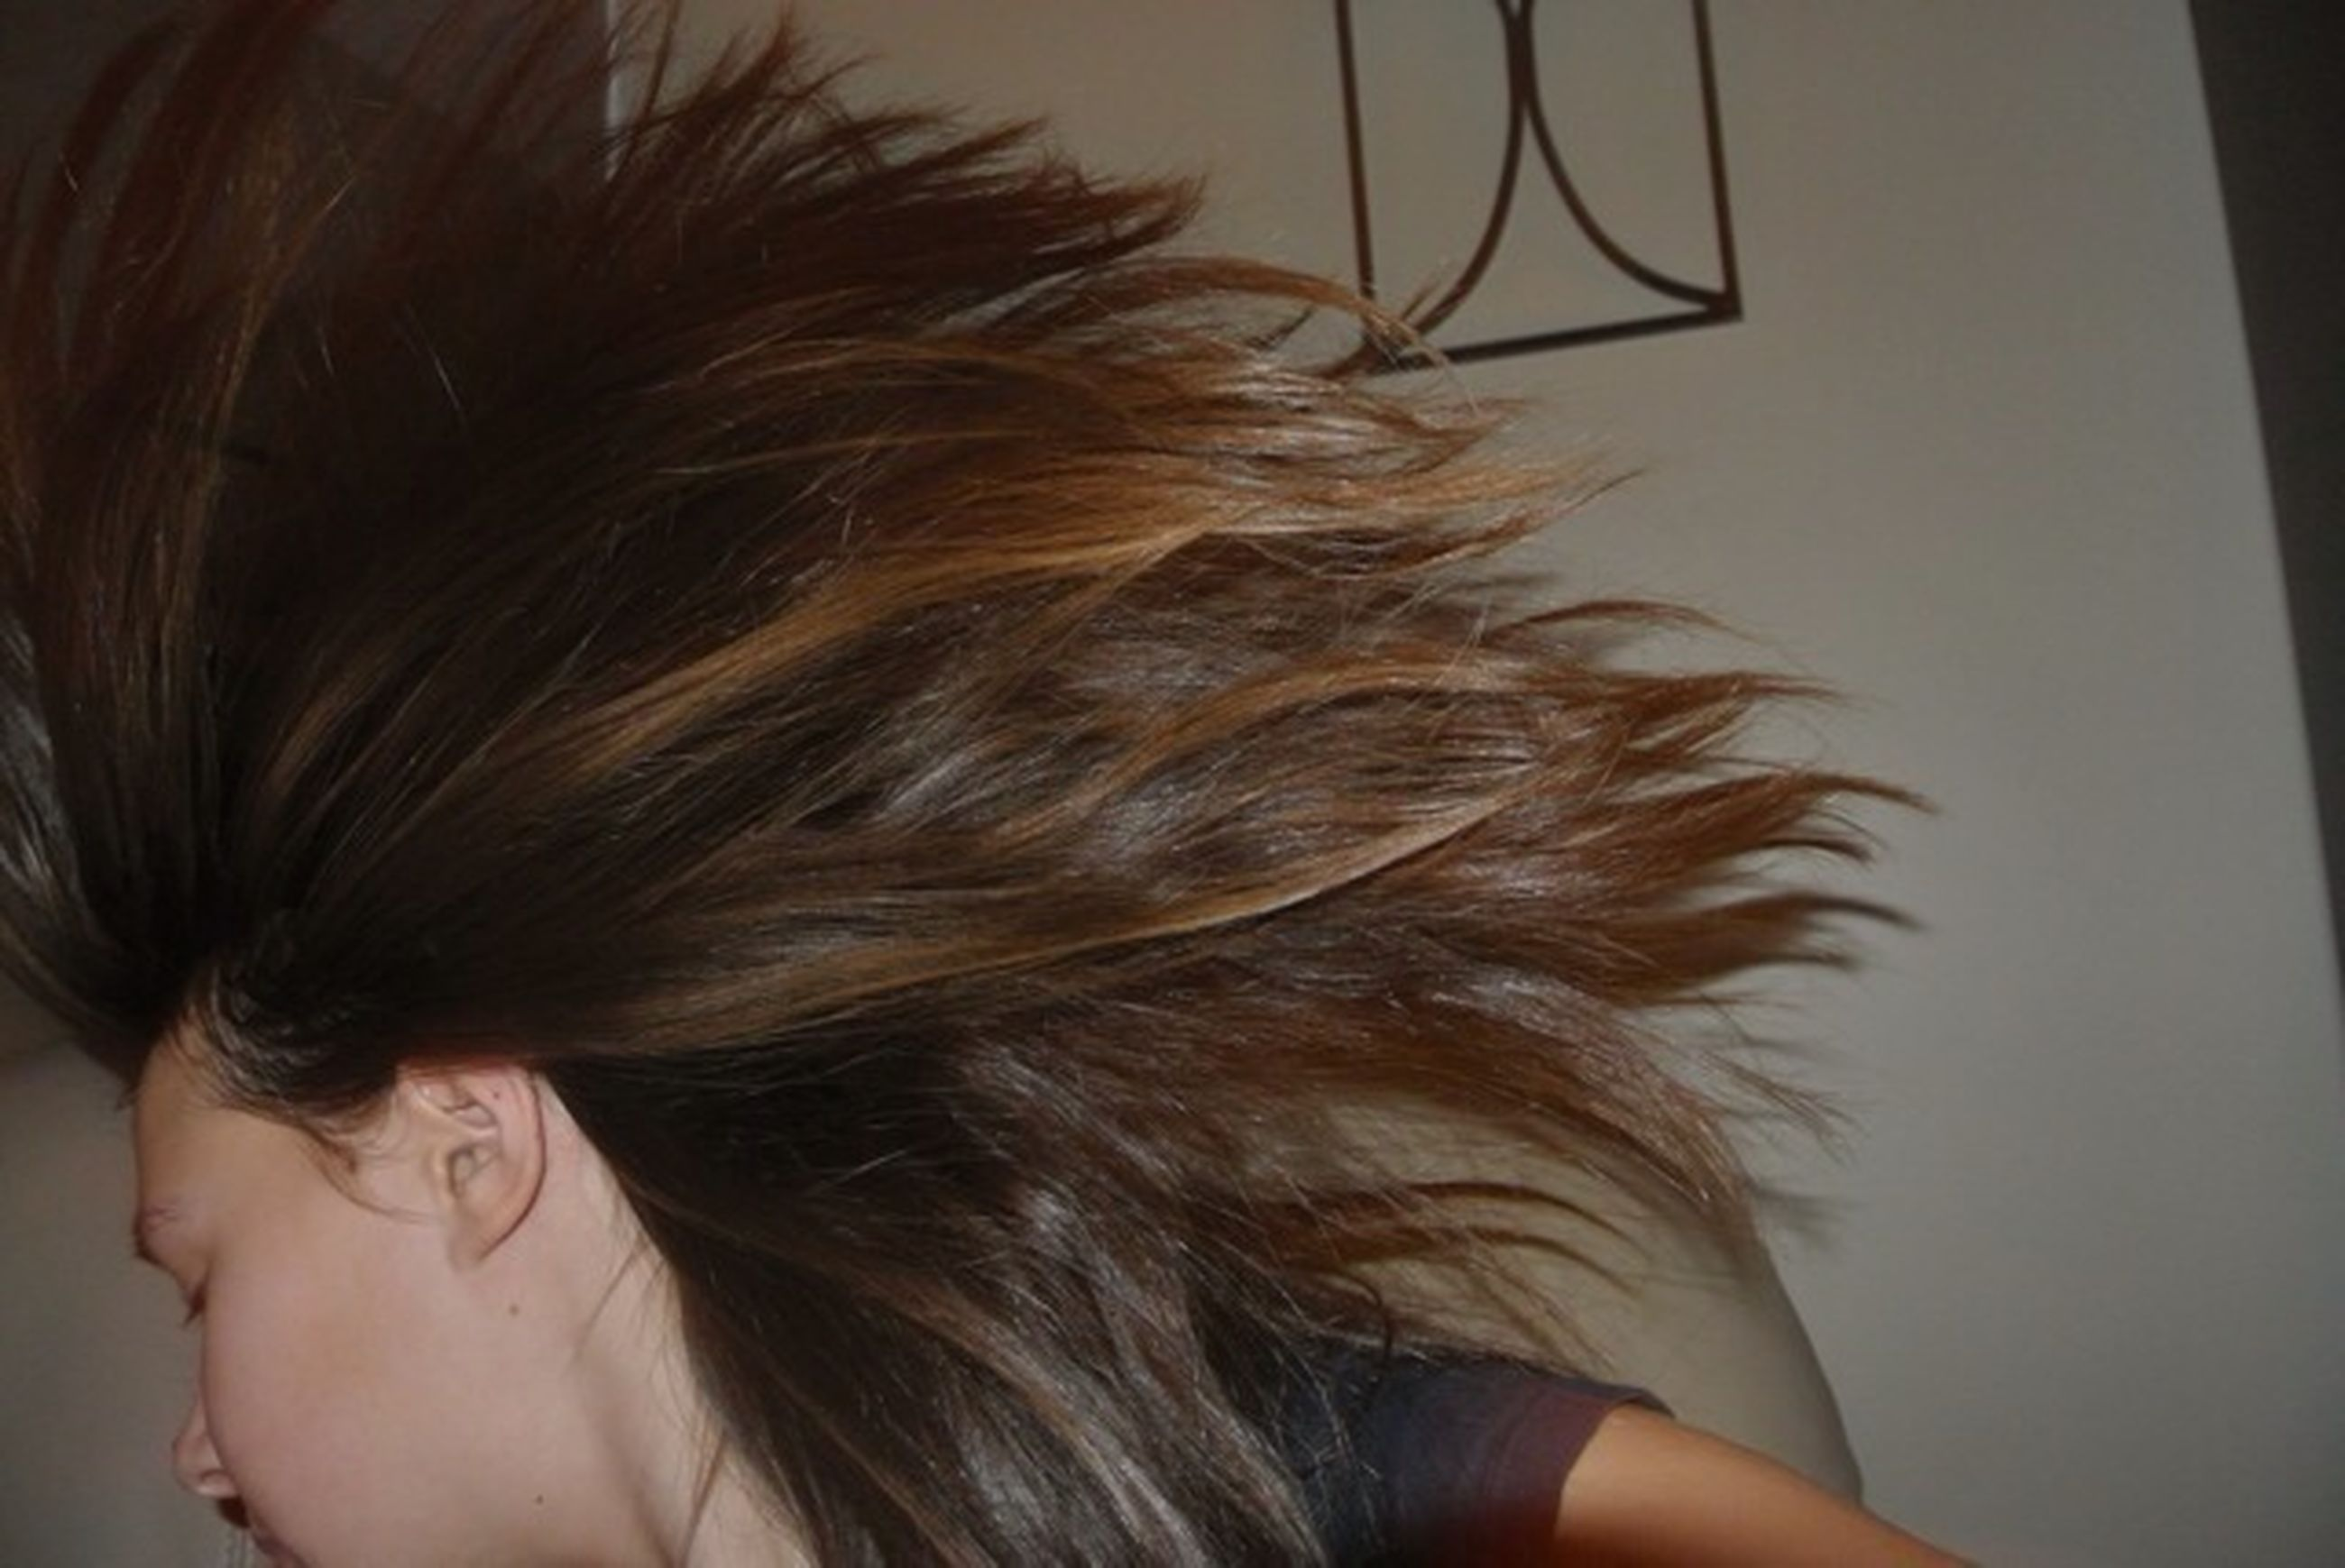 headshot, lifestyles, long hair, young women, person, human hair, leisure activity, indoors, young adult, close-up, brown hair, part of, cropped, head and shoulders